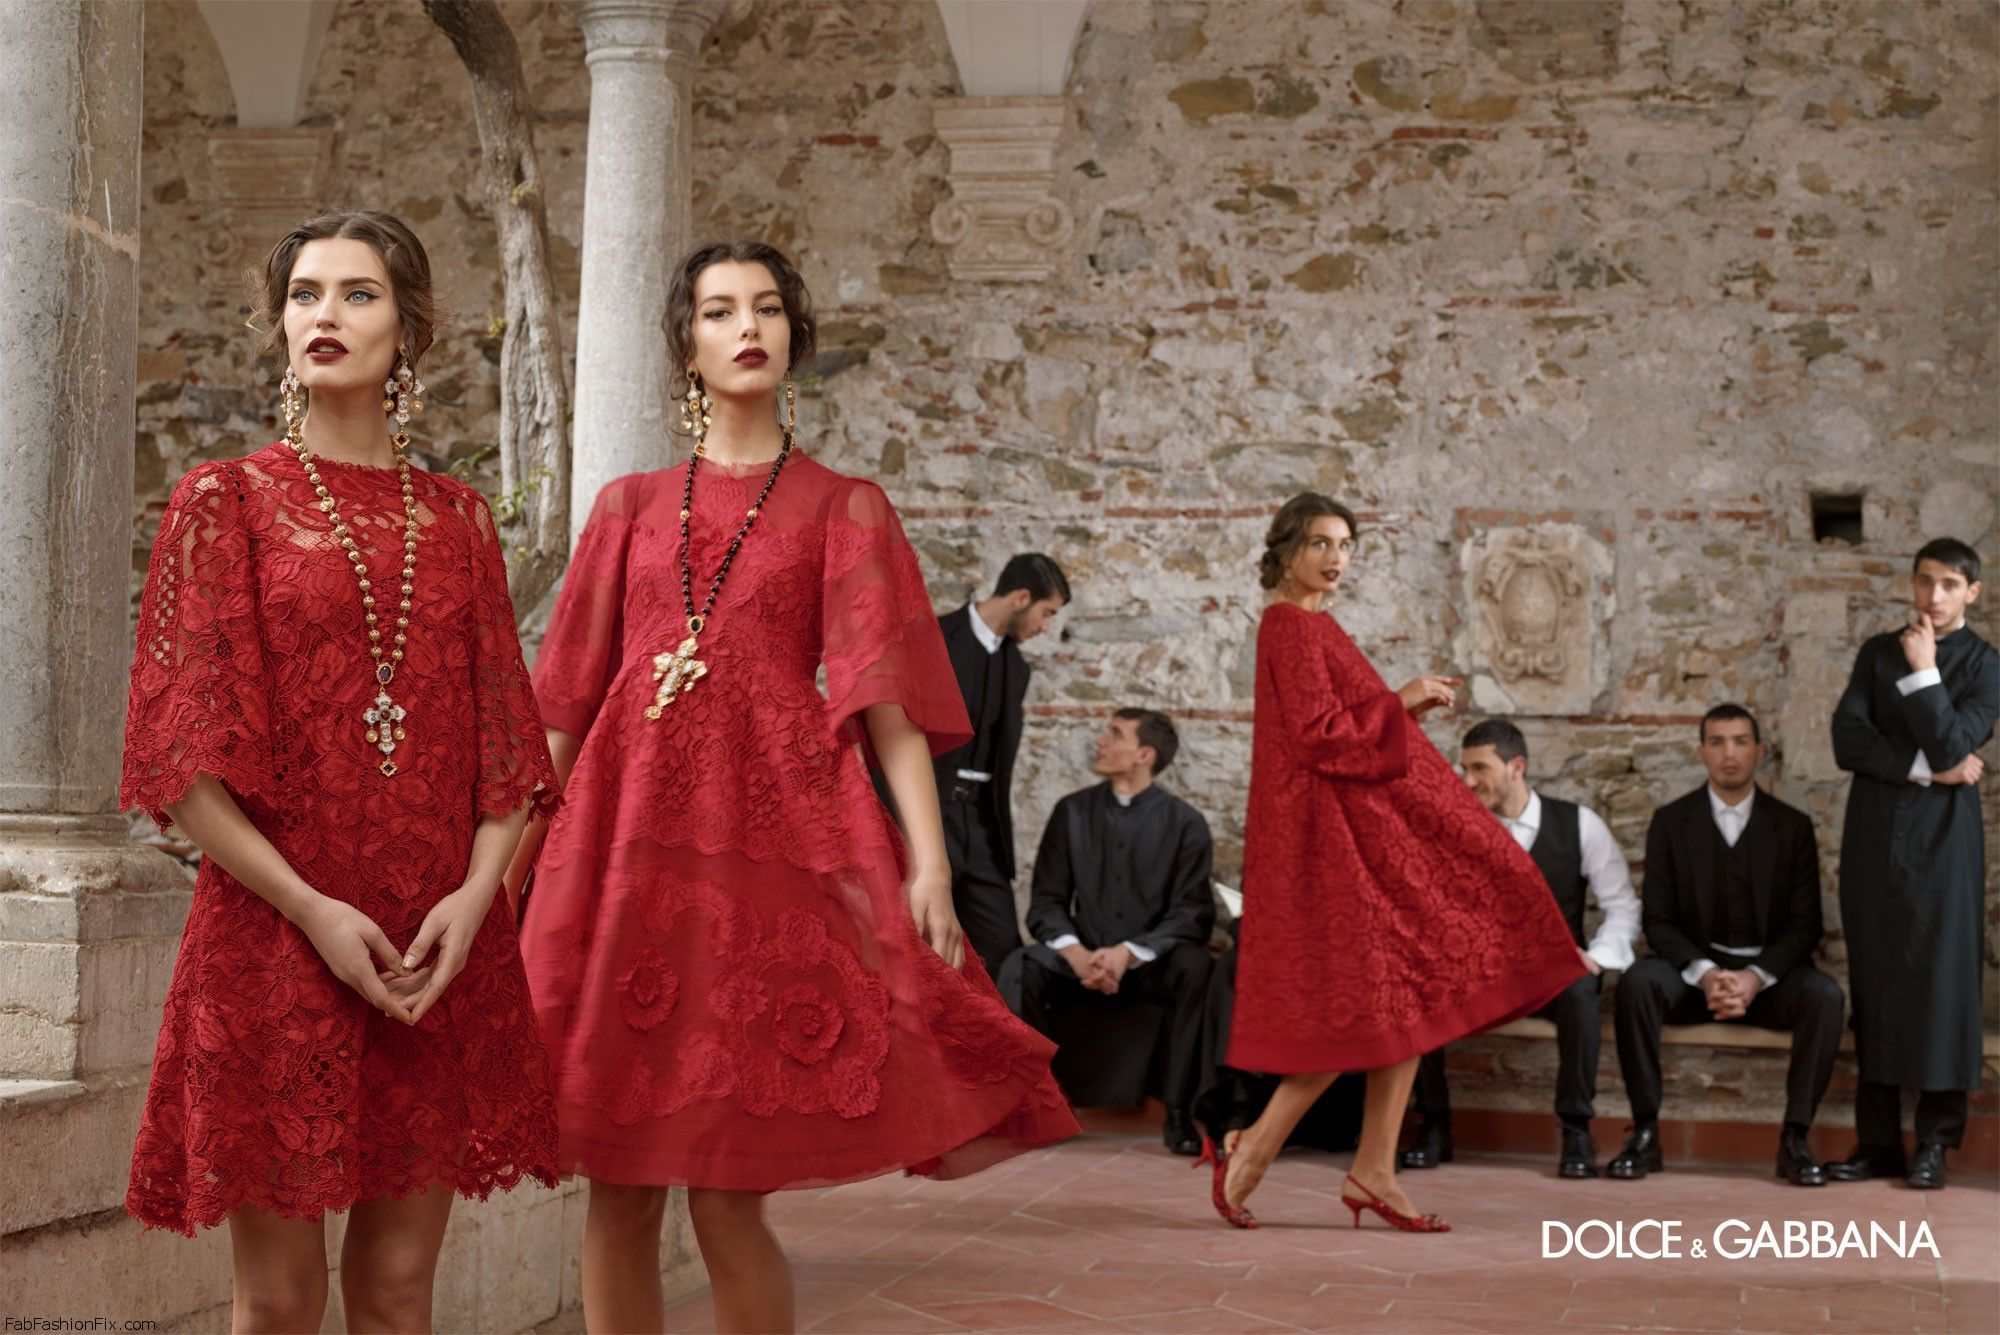 dolce-and-gabbana-fw-2014-women-adv-campaign-5